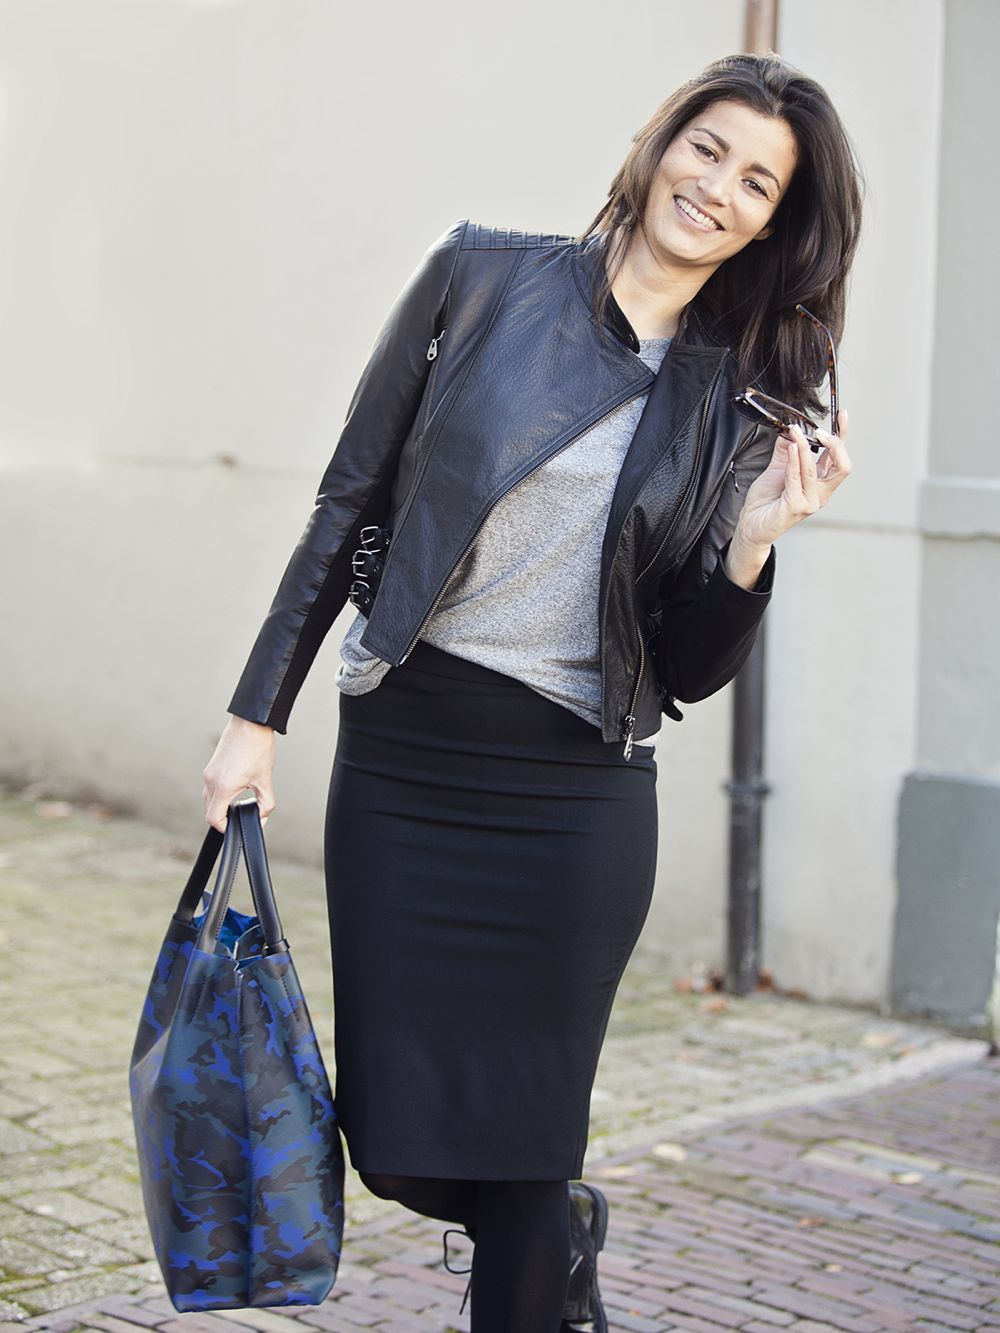 Streetstyle look pencil skirt fall 2014